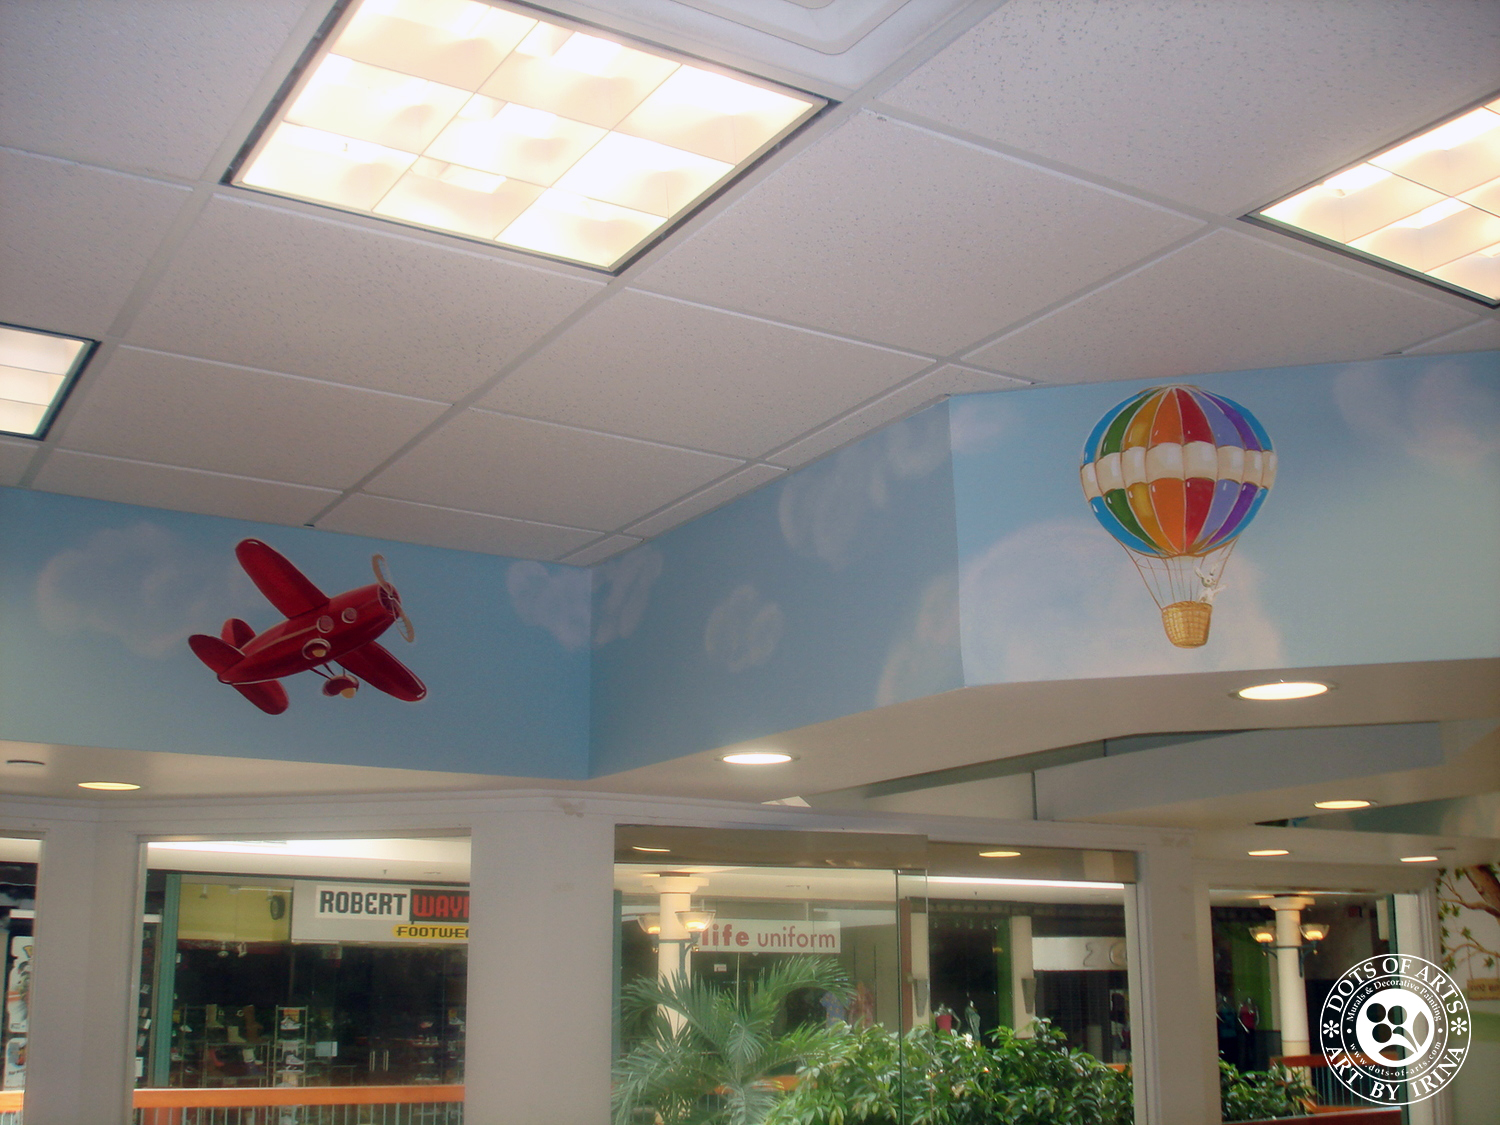 mural-sky-red-air-plane-air-baloon-custom-painted-kid-cutz-hair-salon-woodbridge-mall-NJ-dots-of-arts-copyright2015.jpg